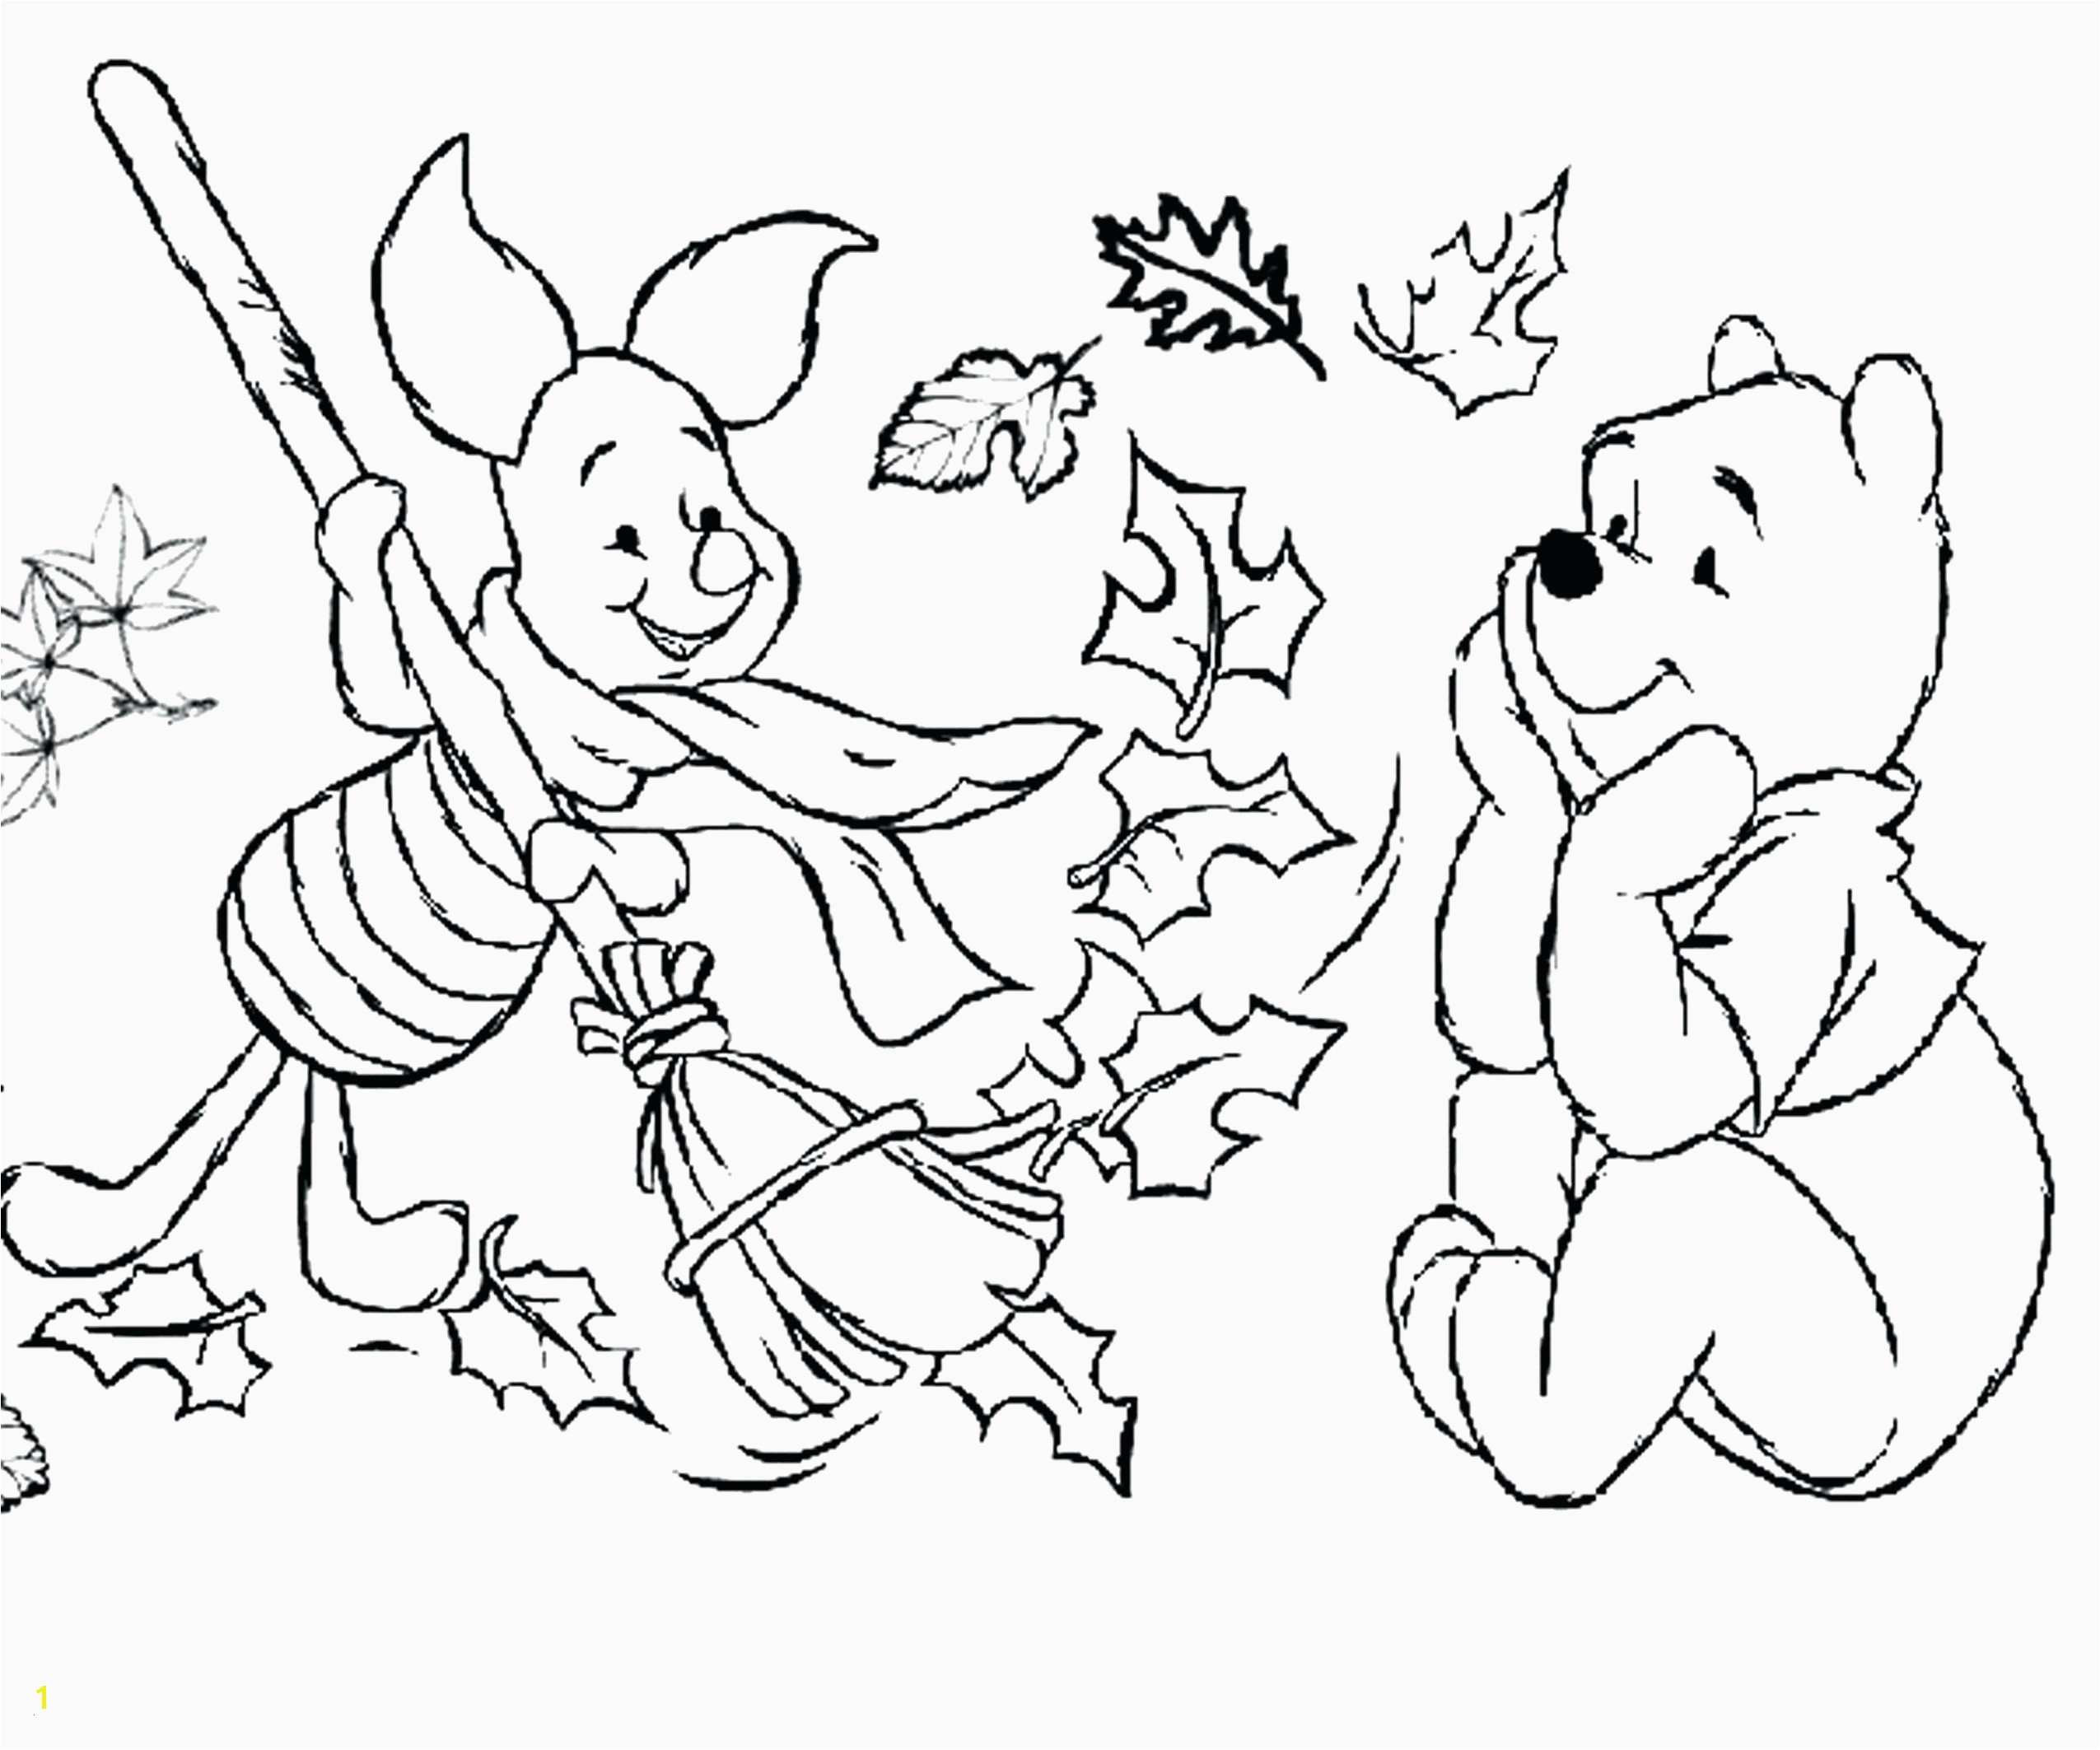 Transformer Coloring Pages Family Coloring Pages Nice Family Picture Coloring Luxury Colouring Family C3 82